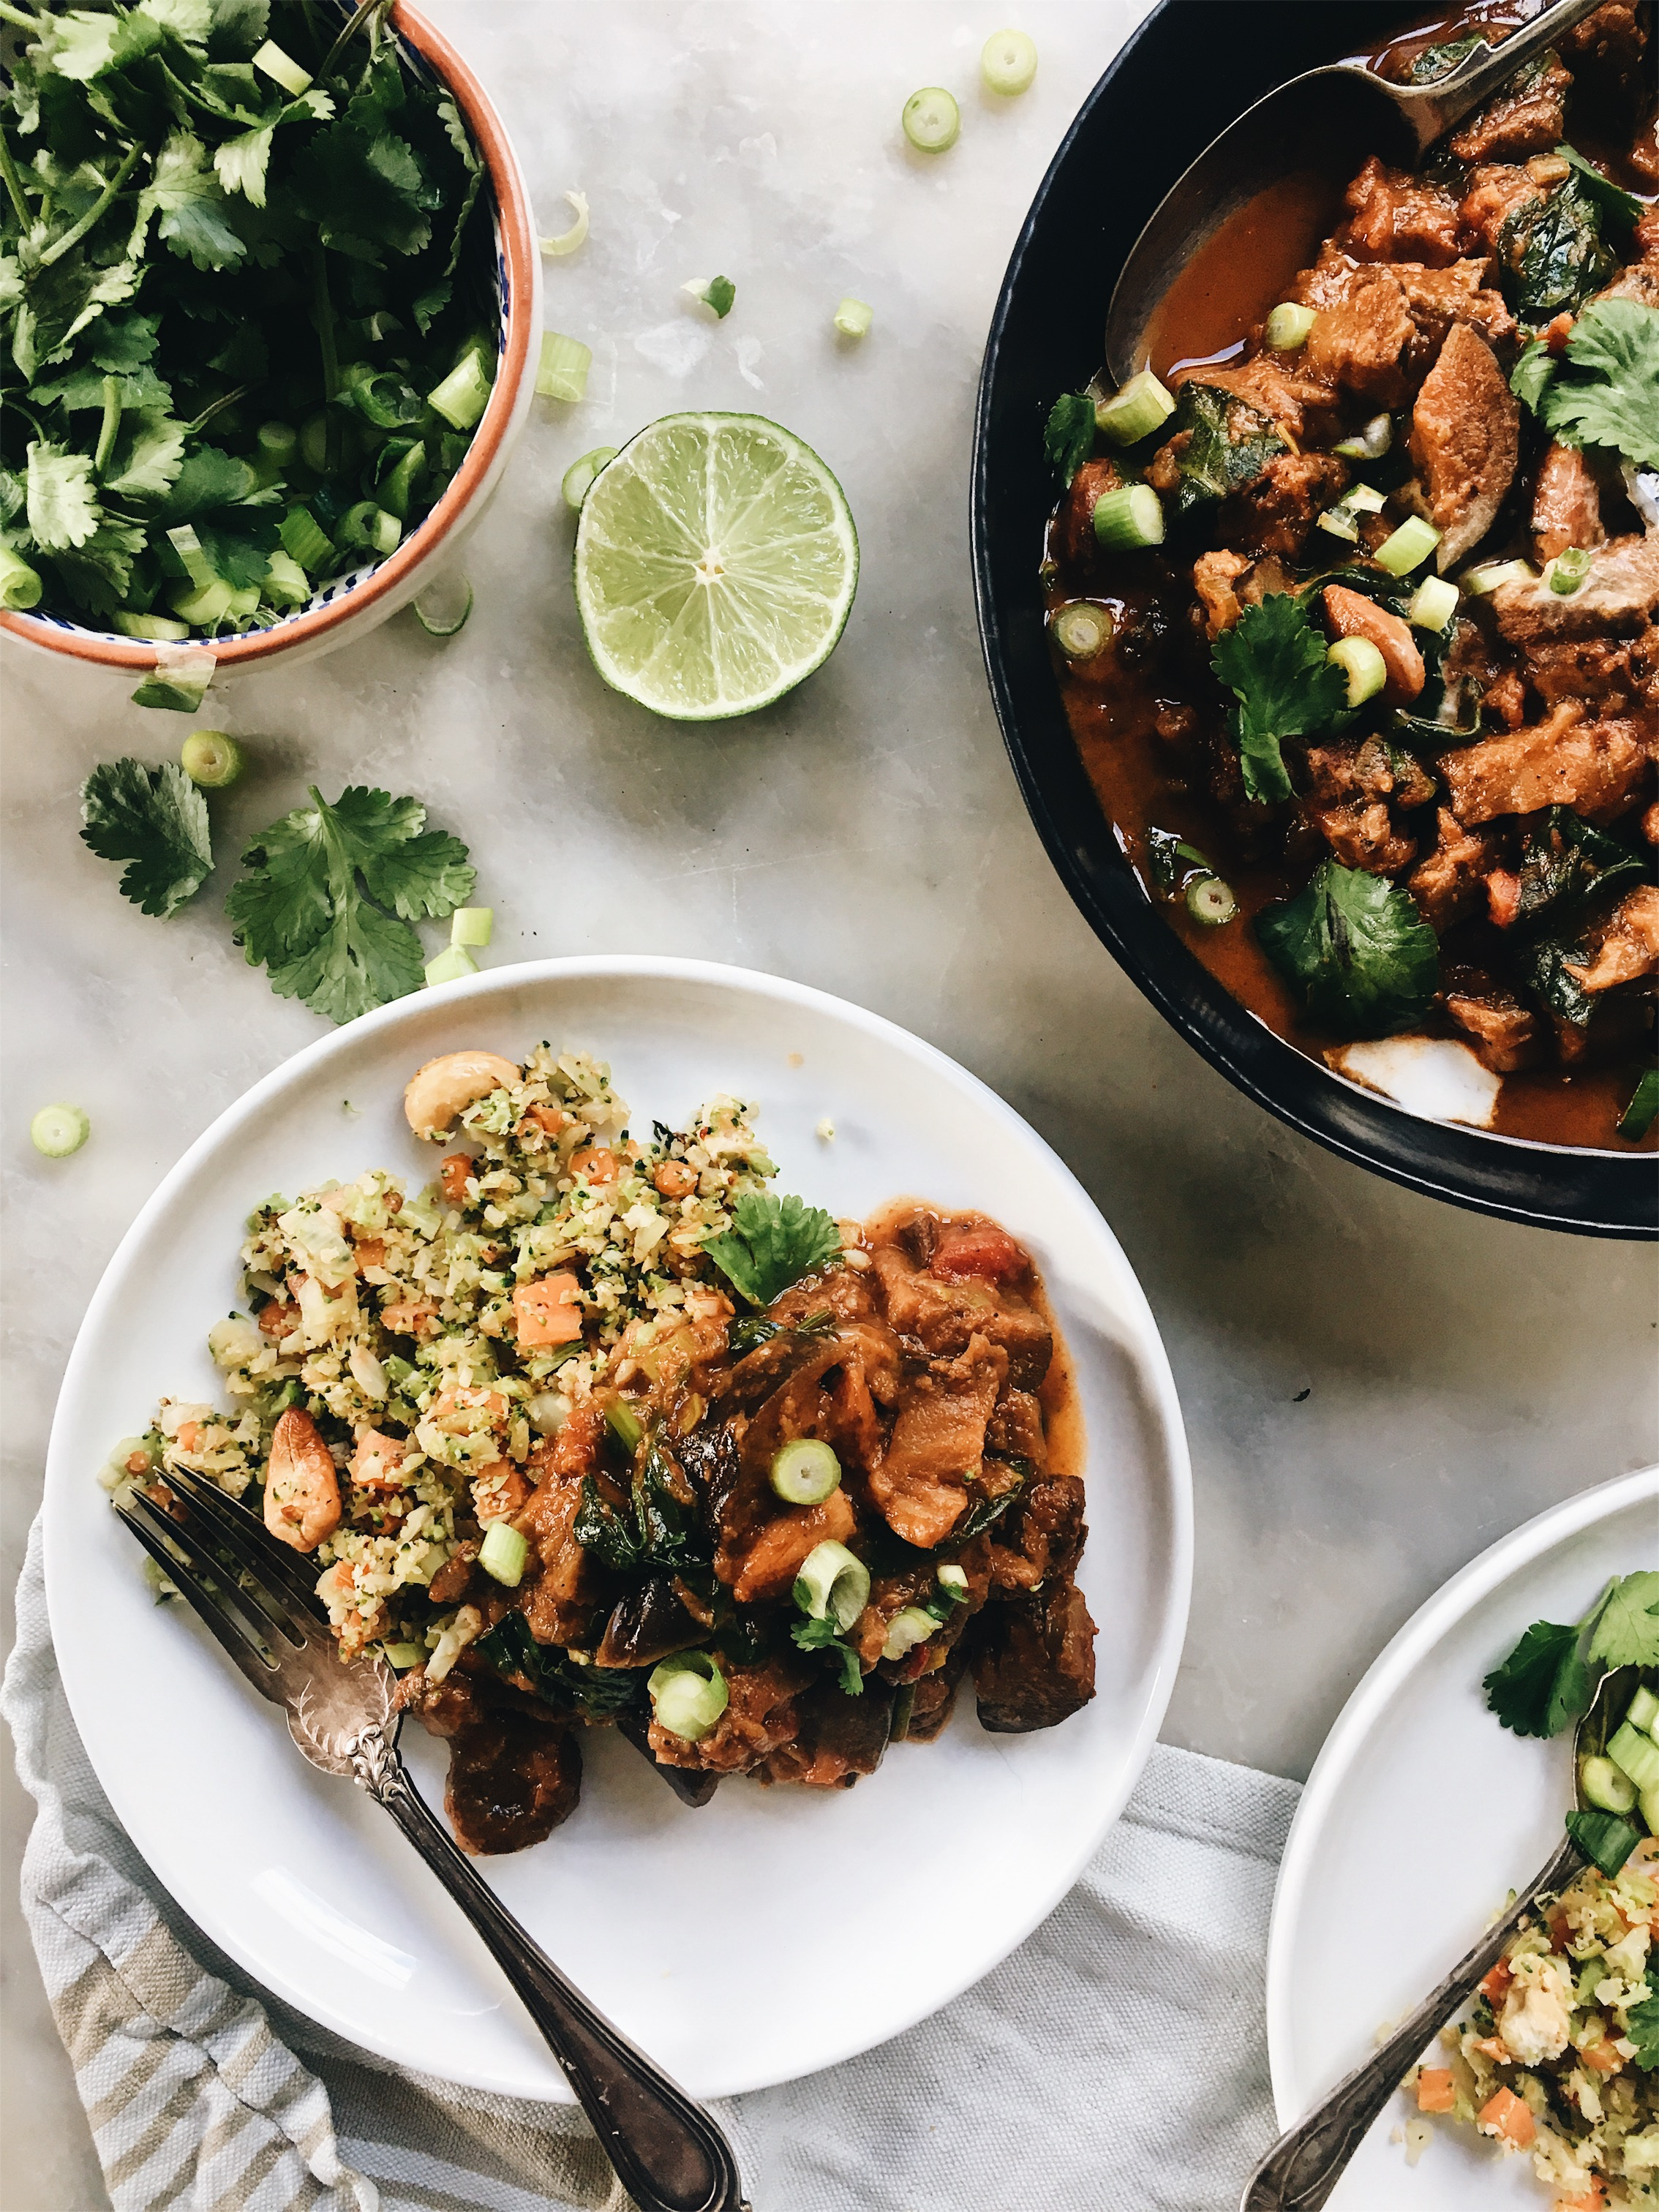 LAMB, EGGPLANT AND ALMOND CURRY | The Healthy Hunter